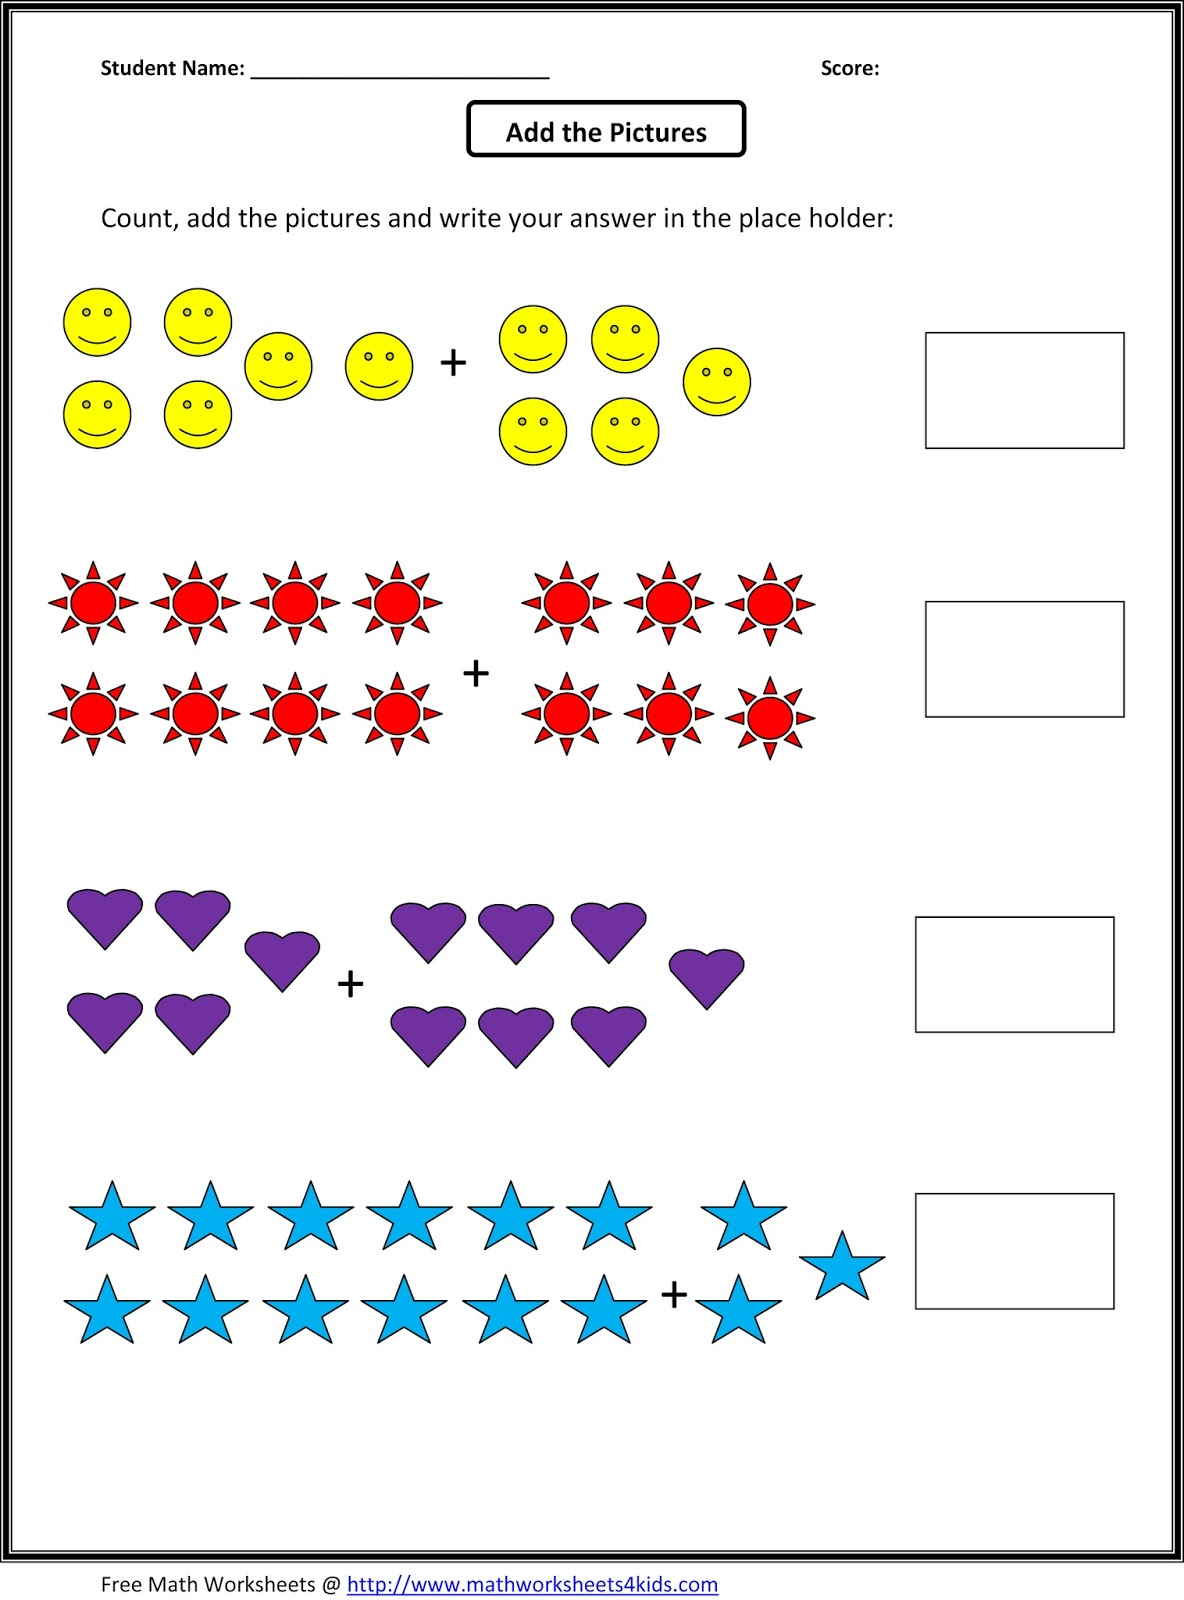 Printables Functional Math Worksheets functional math worksheets special education life skills worksheet ed connections august 2015 education